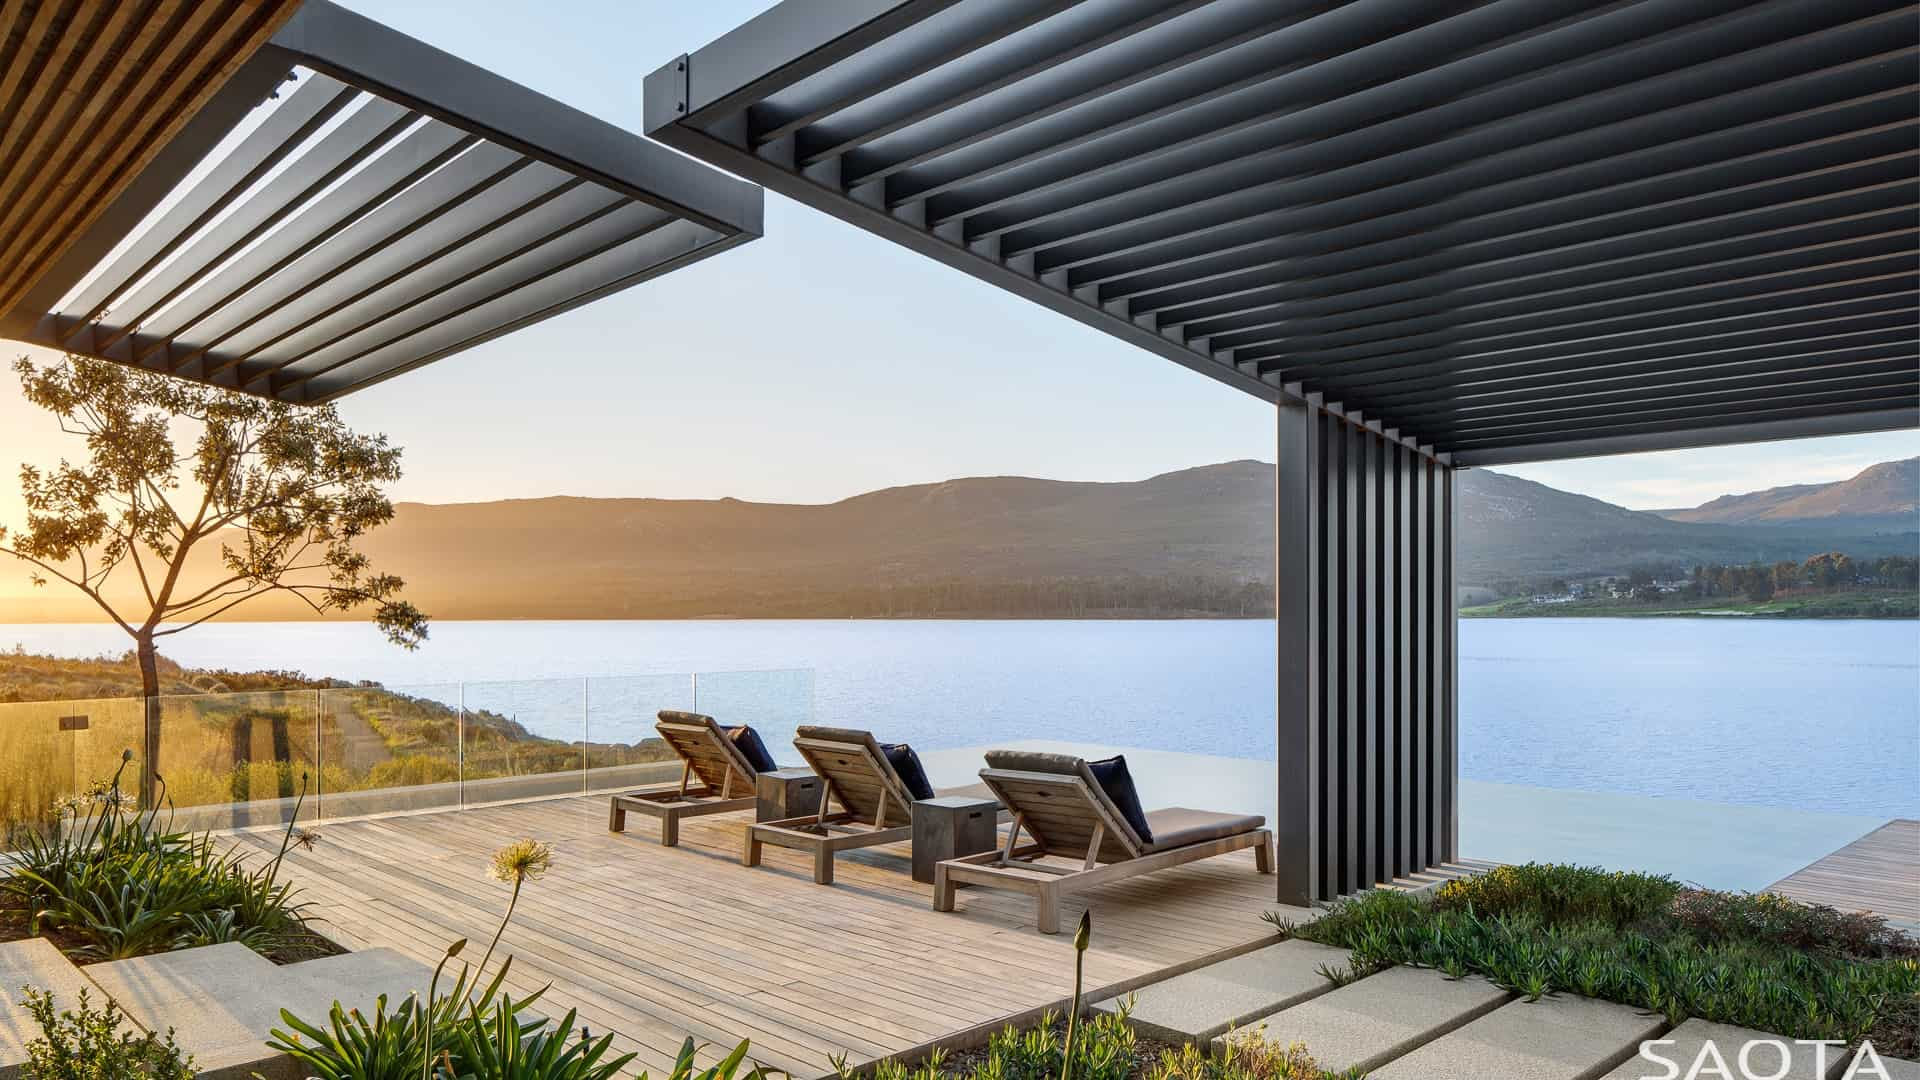 Another view of the home's outdoor deck and sitting lounge overlooking the jaw-dropping views. Photo Credit: Adam Letch